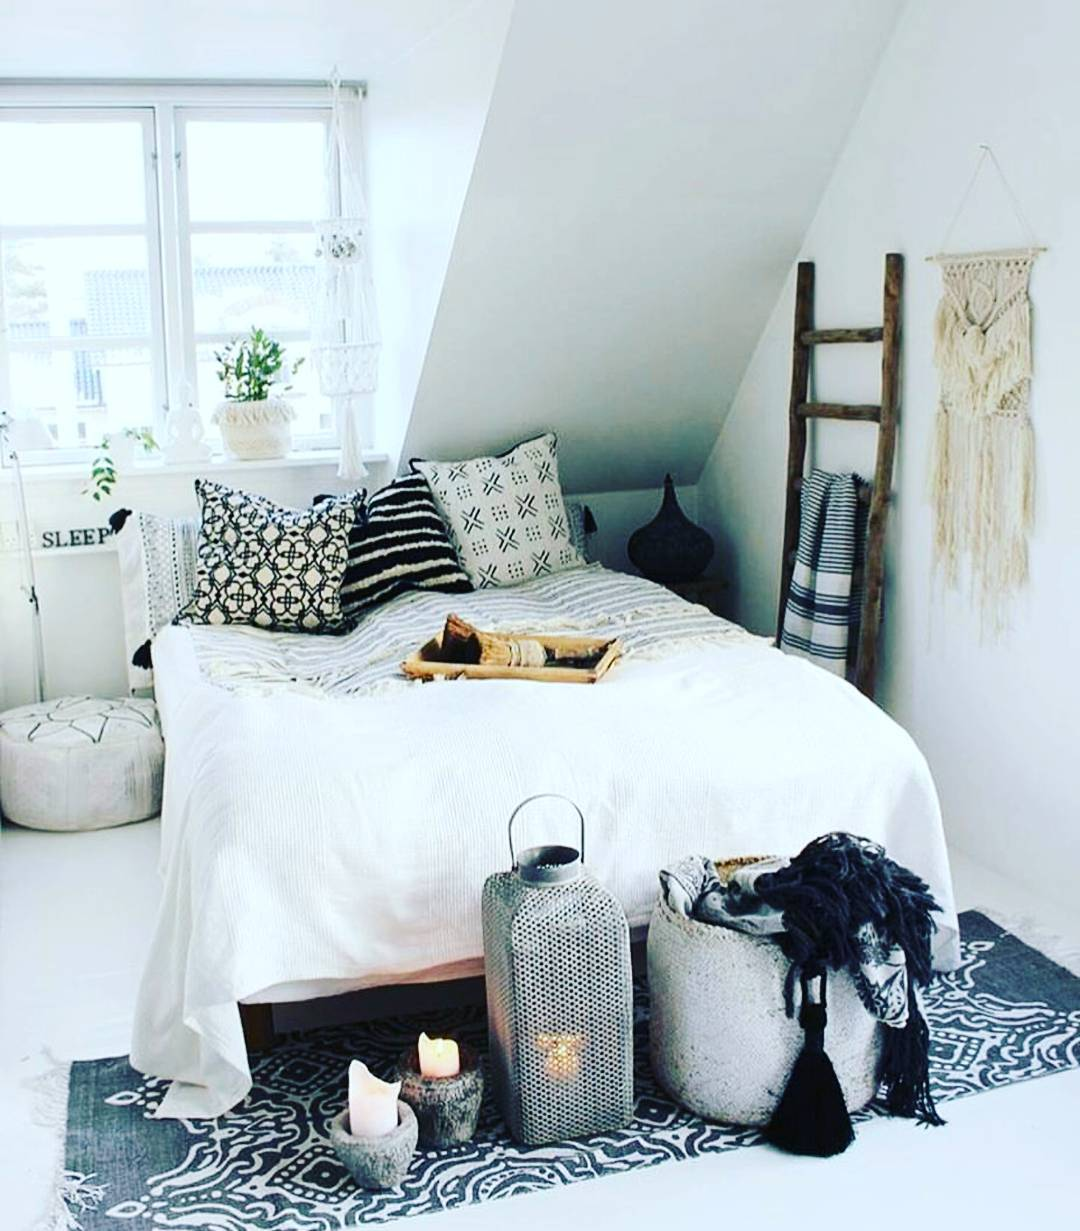 21 Bohemian Chic Bedroom Decor Ideas  Royal Furnish